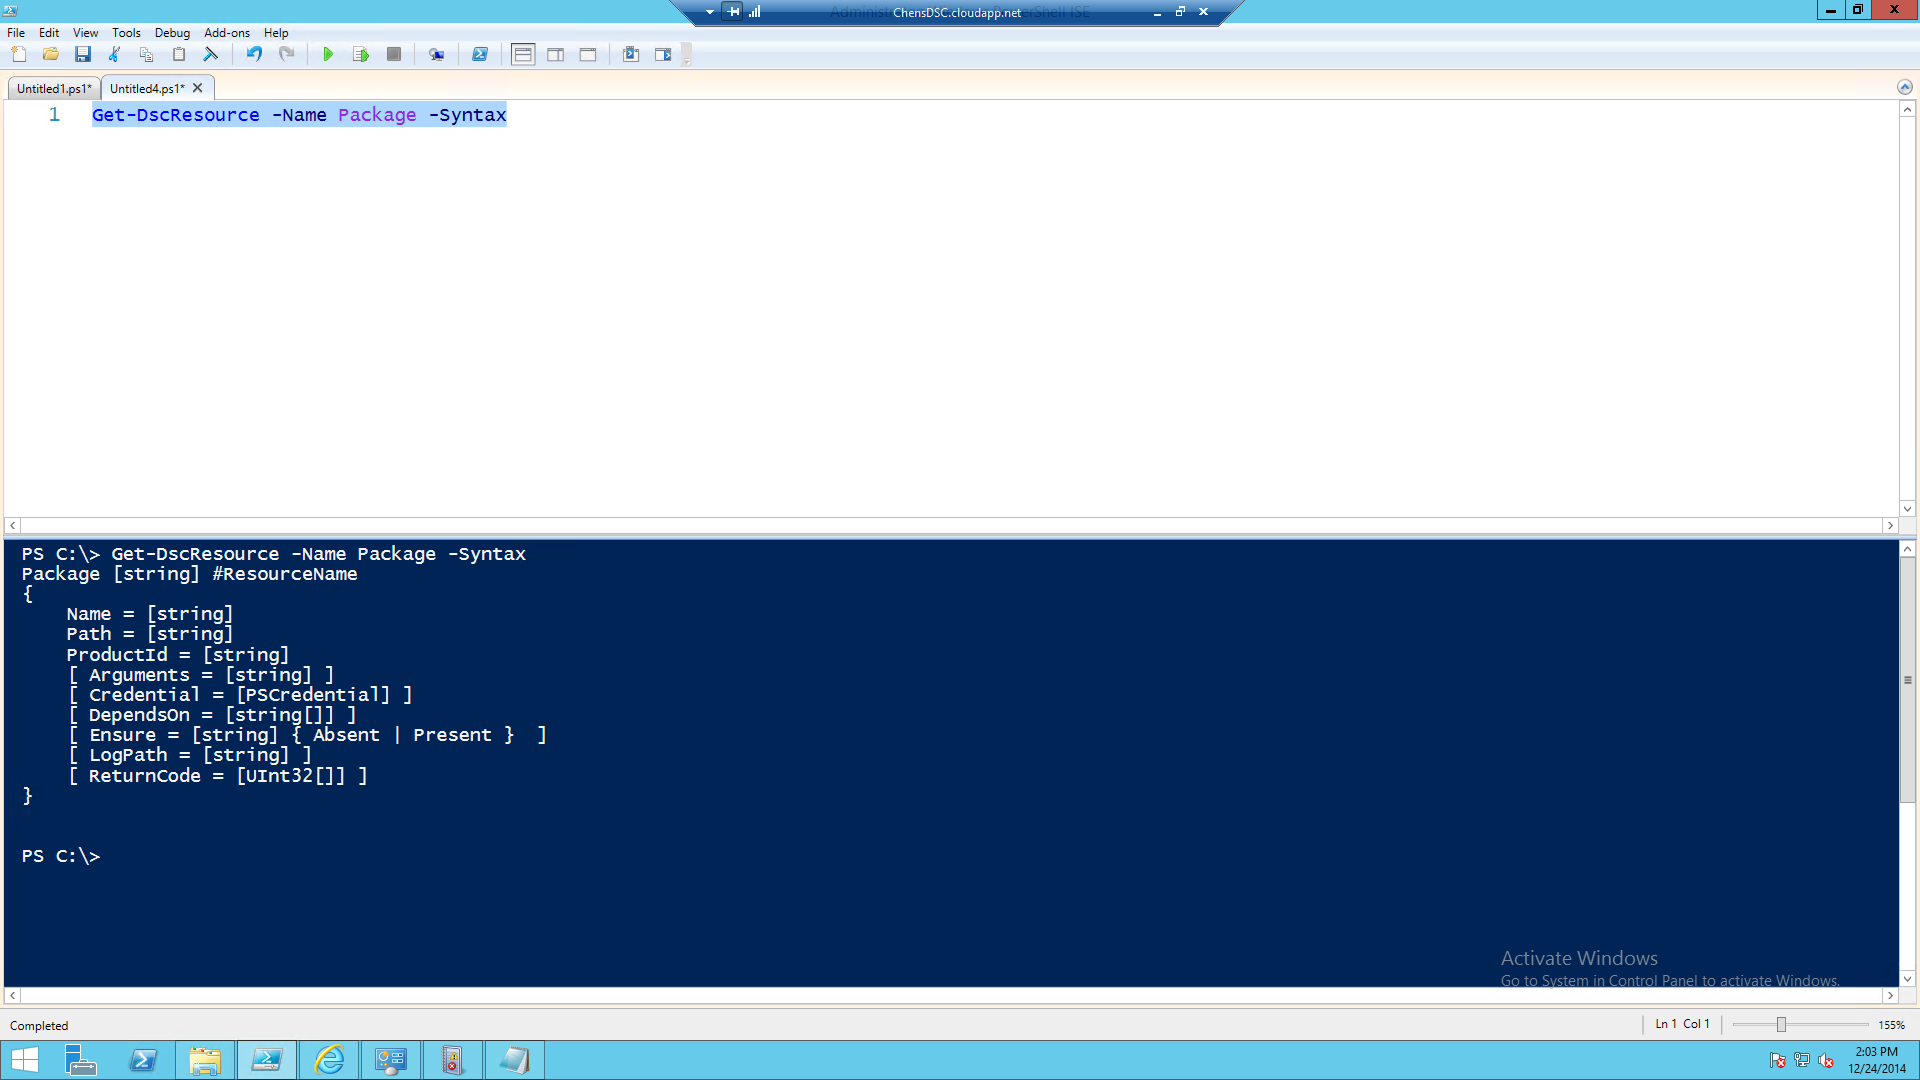 Installing MSI packages using PowerShell Desired State